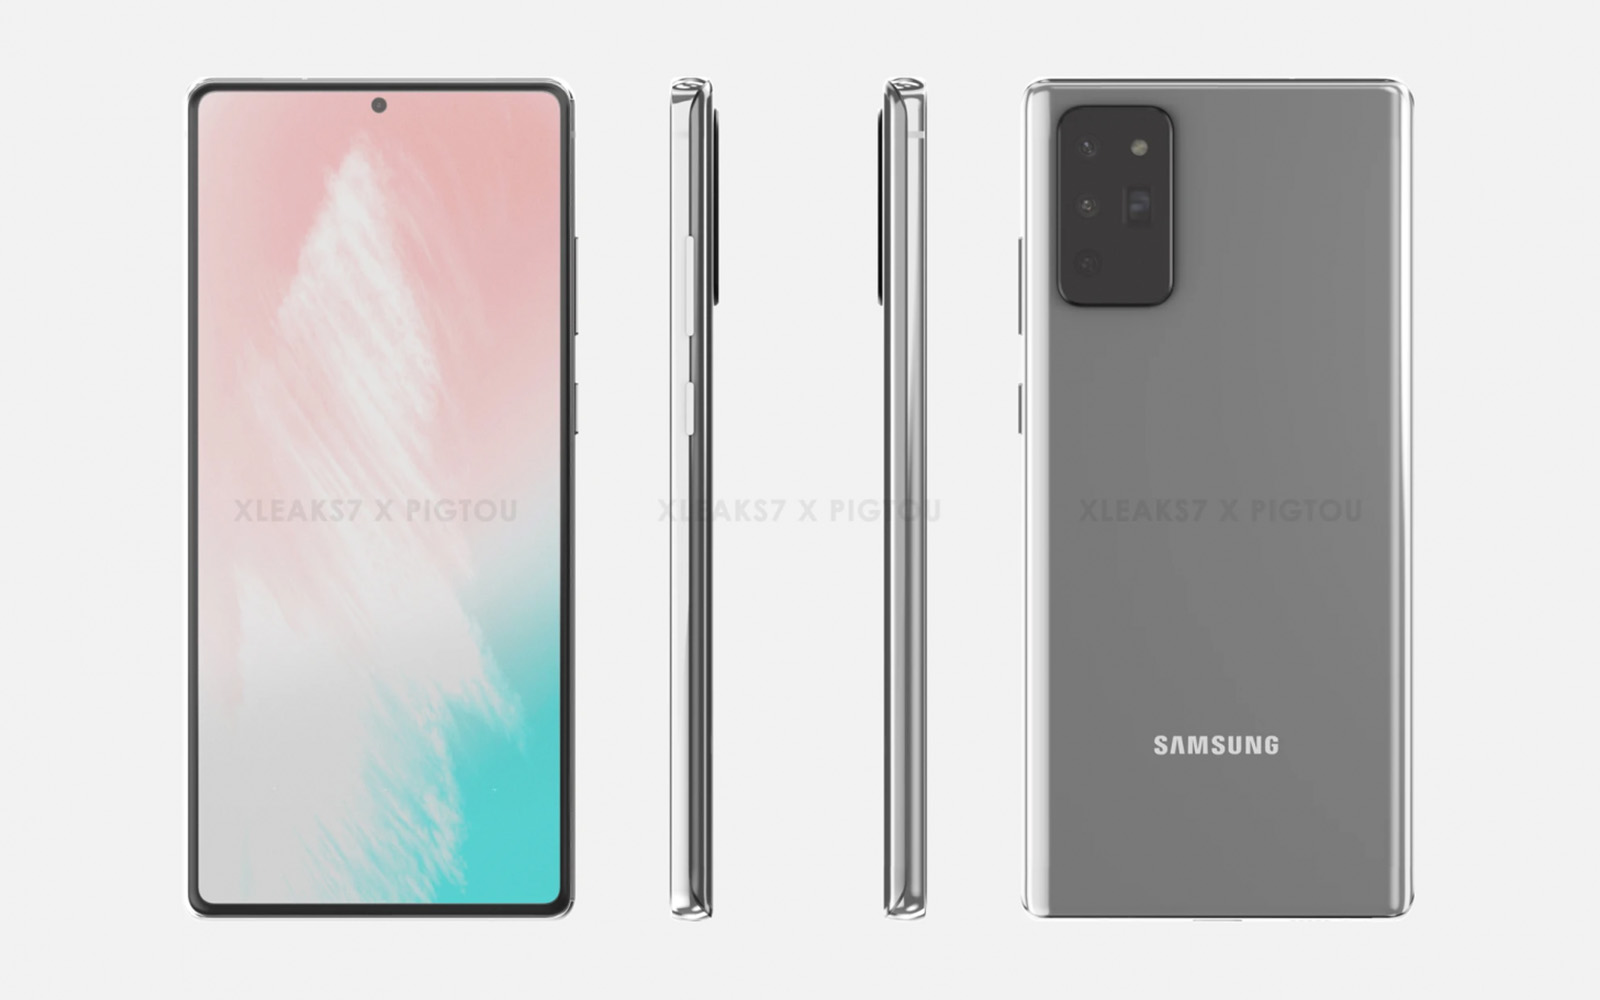 Samsung Galaxy Note20: design, specifications and release date